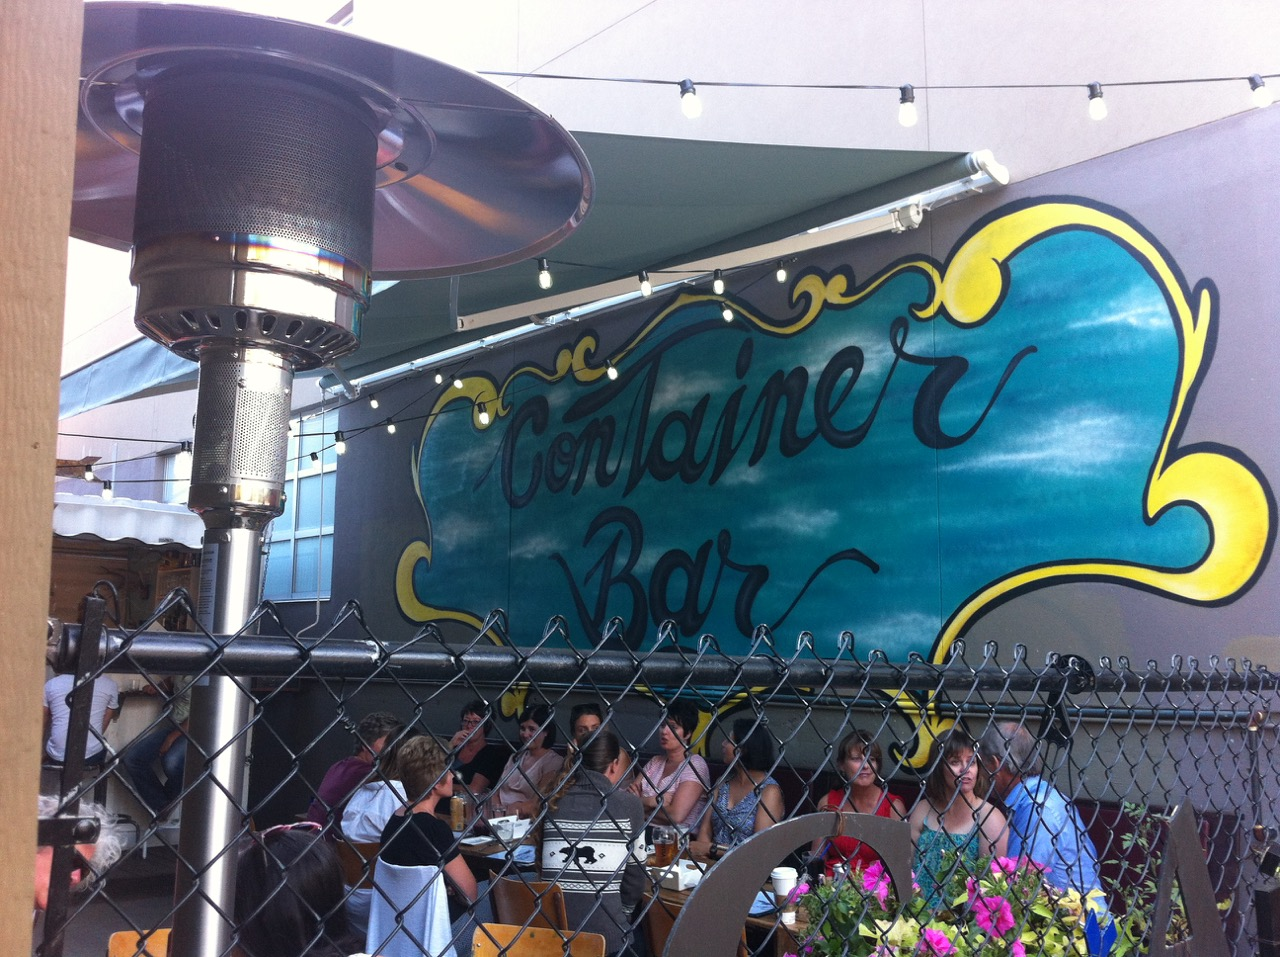 One of the best surprises in Kensington Village is the Container Bar.